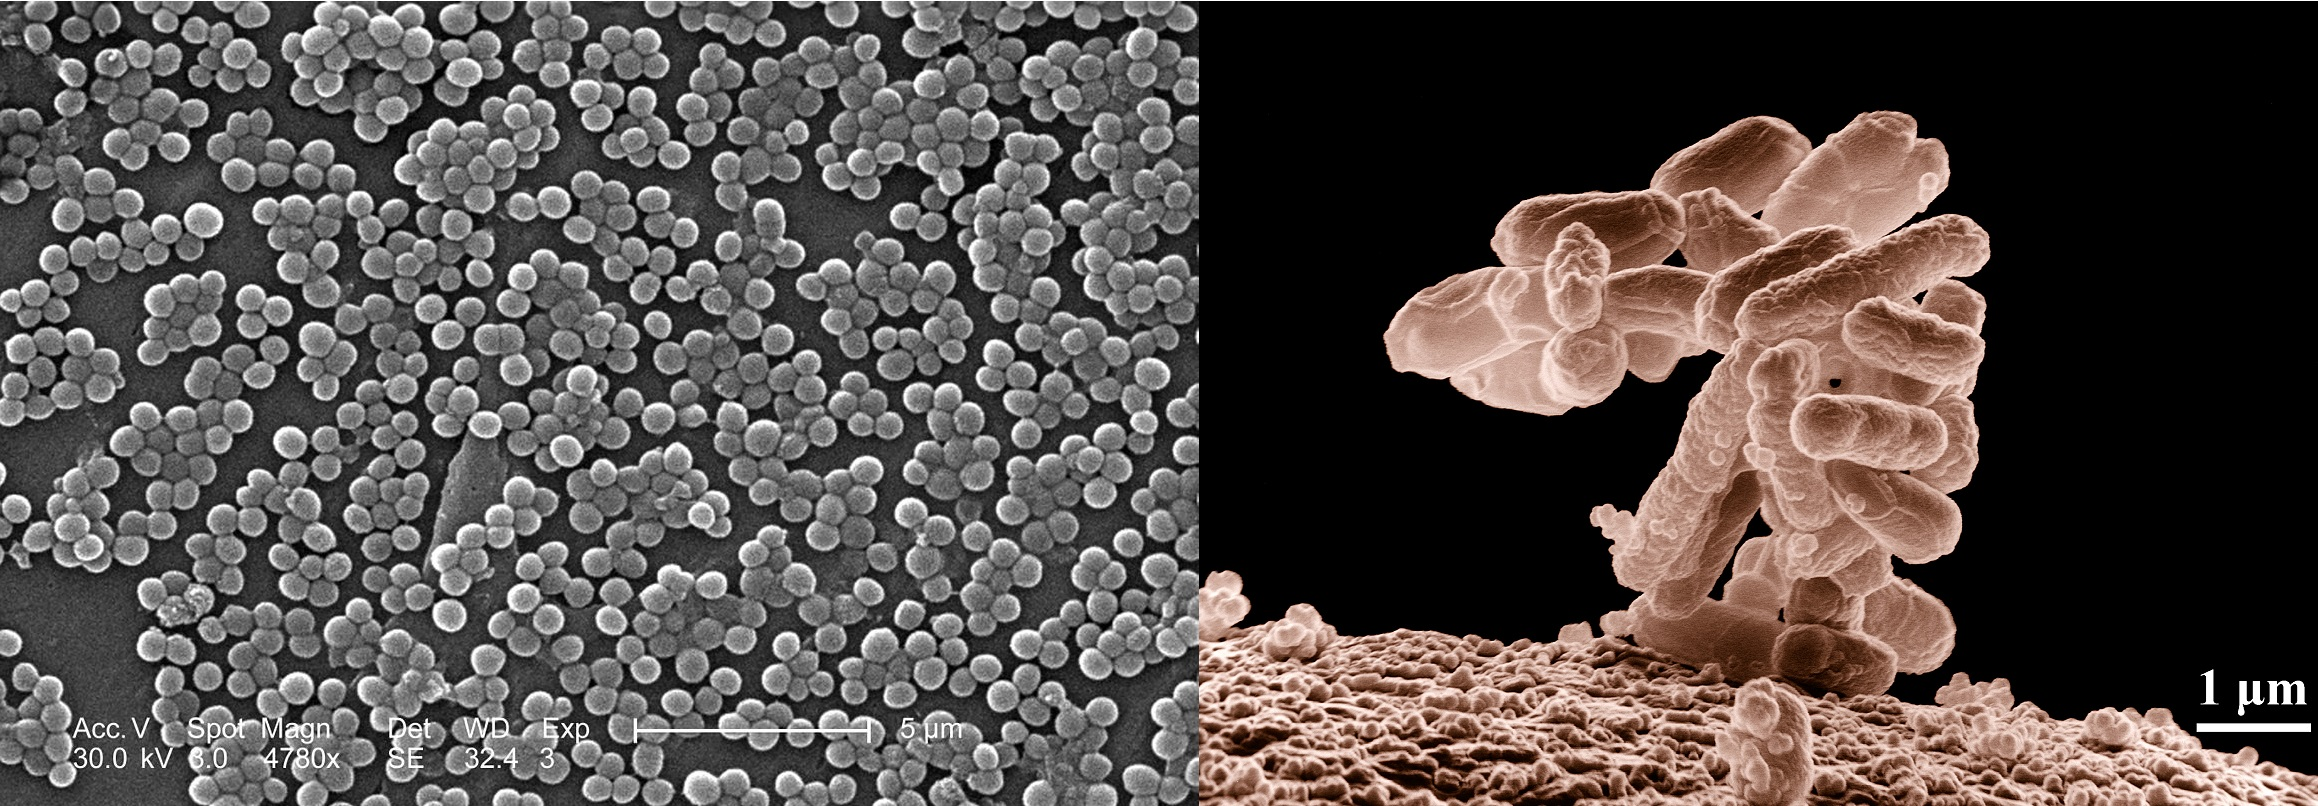 Although bacteria such as  S. aureus  (left) and  E. coli  (right) cause serious disease, humans co-exist quite happily with them   most of the time.    CDC, Janice Carr, Deepak Mandhalapu/Wikimedia Commons .(public domain); Eric Erbe, Christopher Pooley/Wikimedia Commons  (public domain)